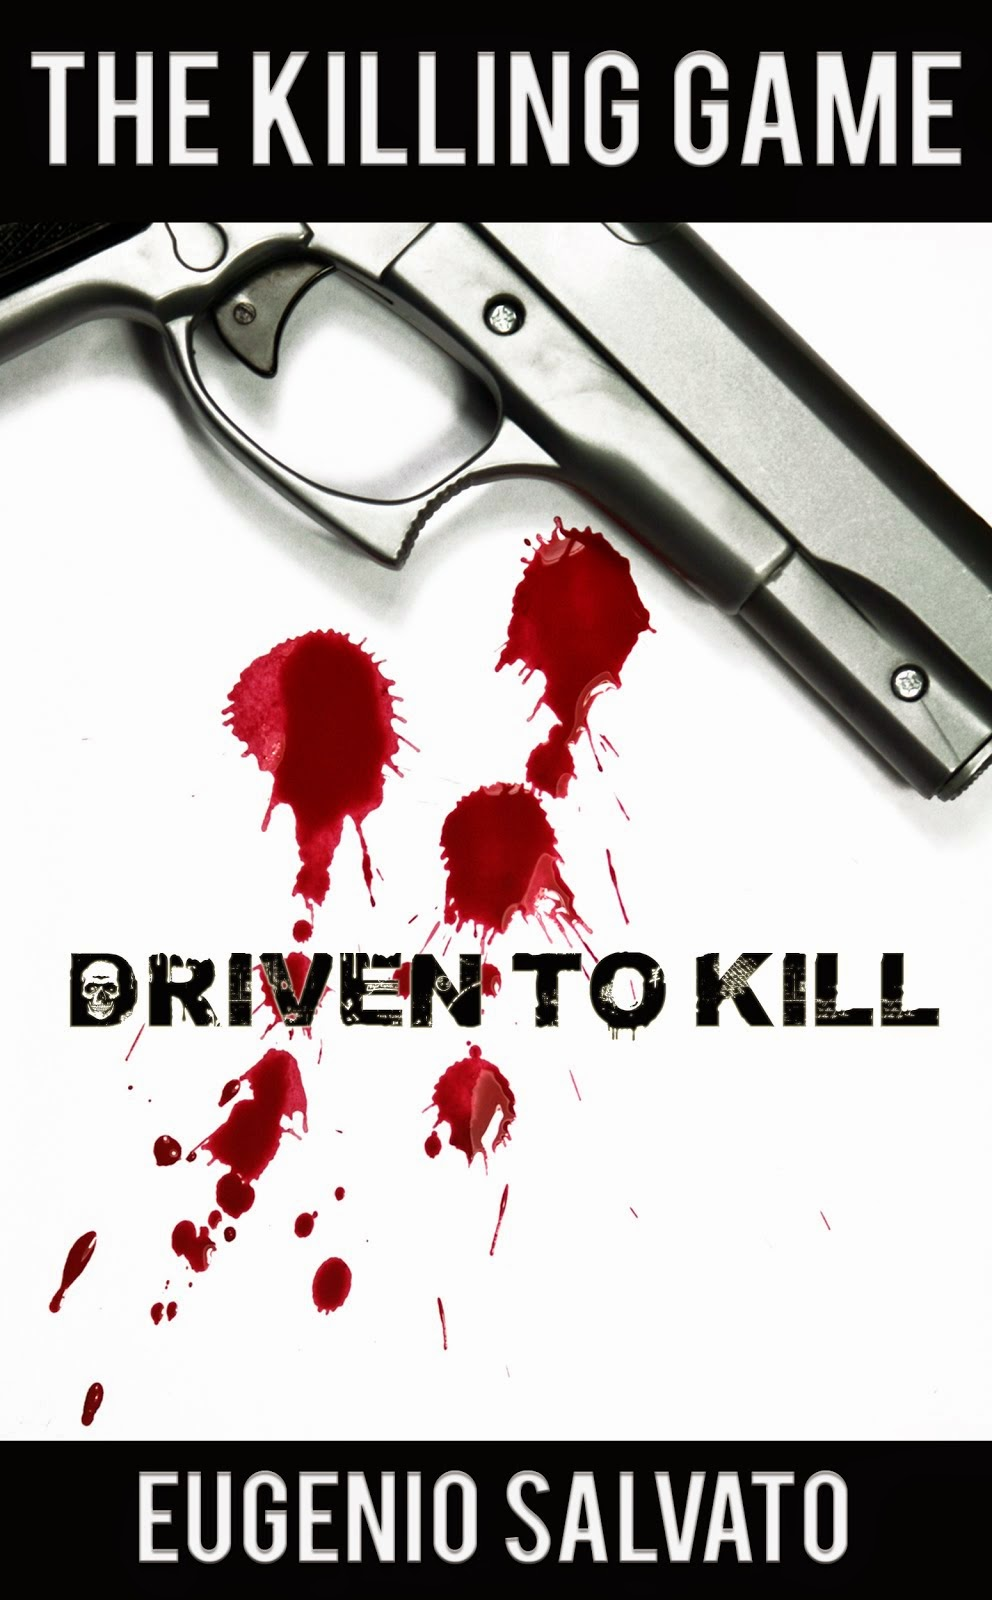 The Killing Game: Driven to Kill